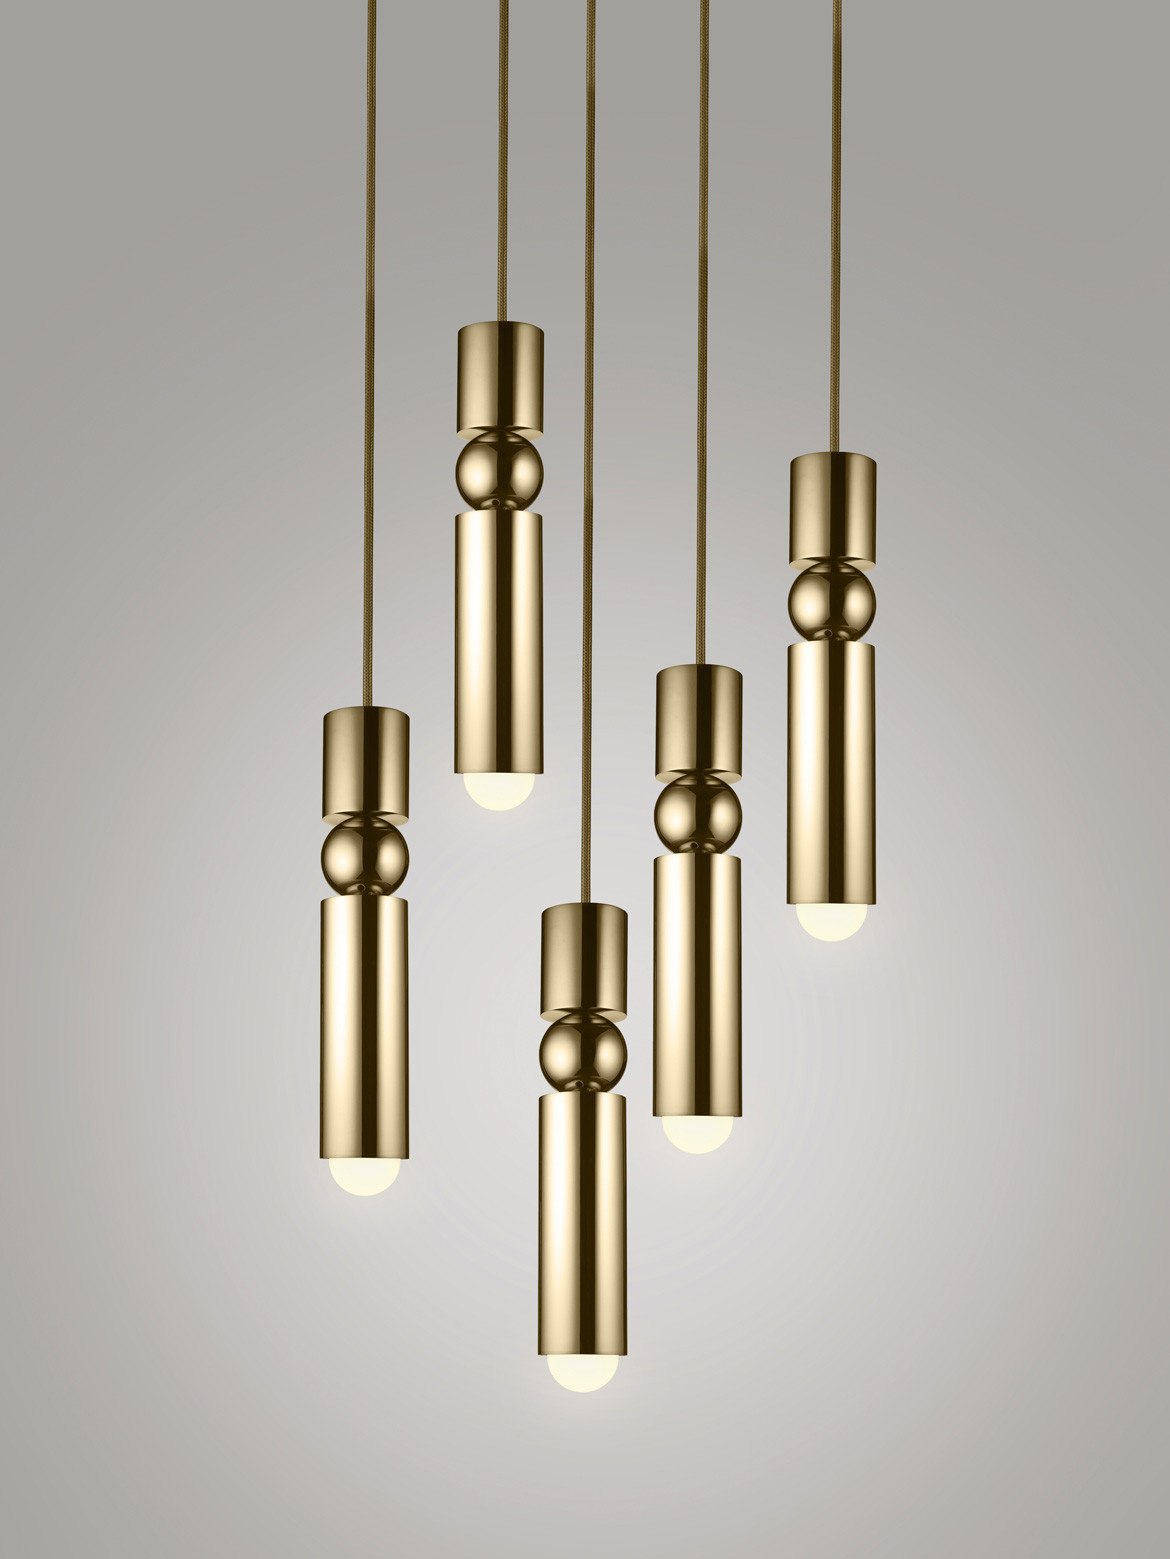 Space Furniture Lee Broom Fulcrum light brass